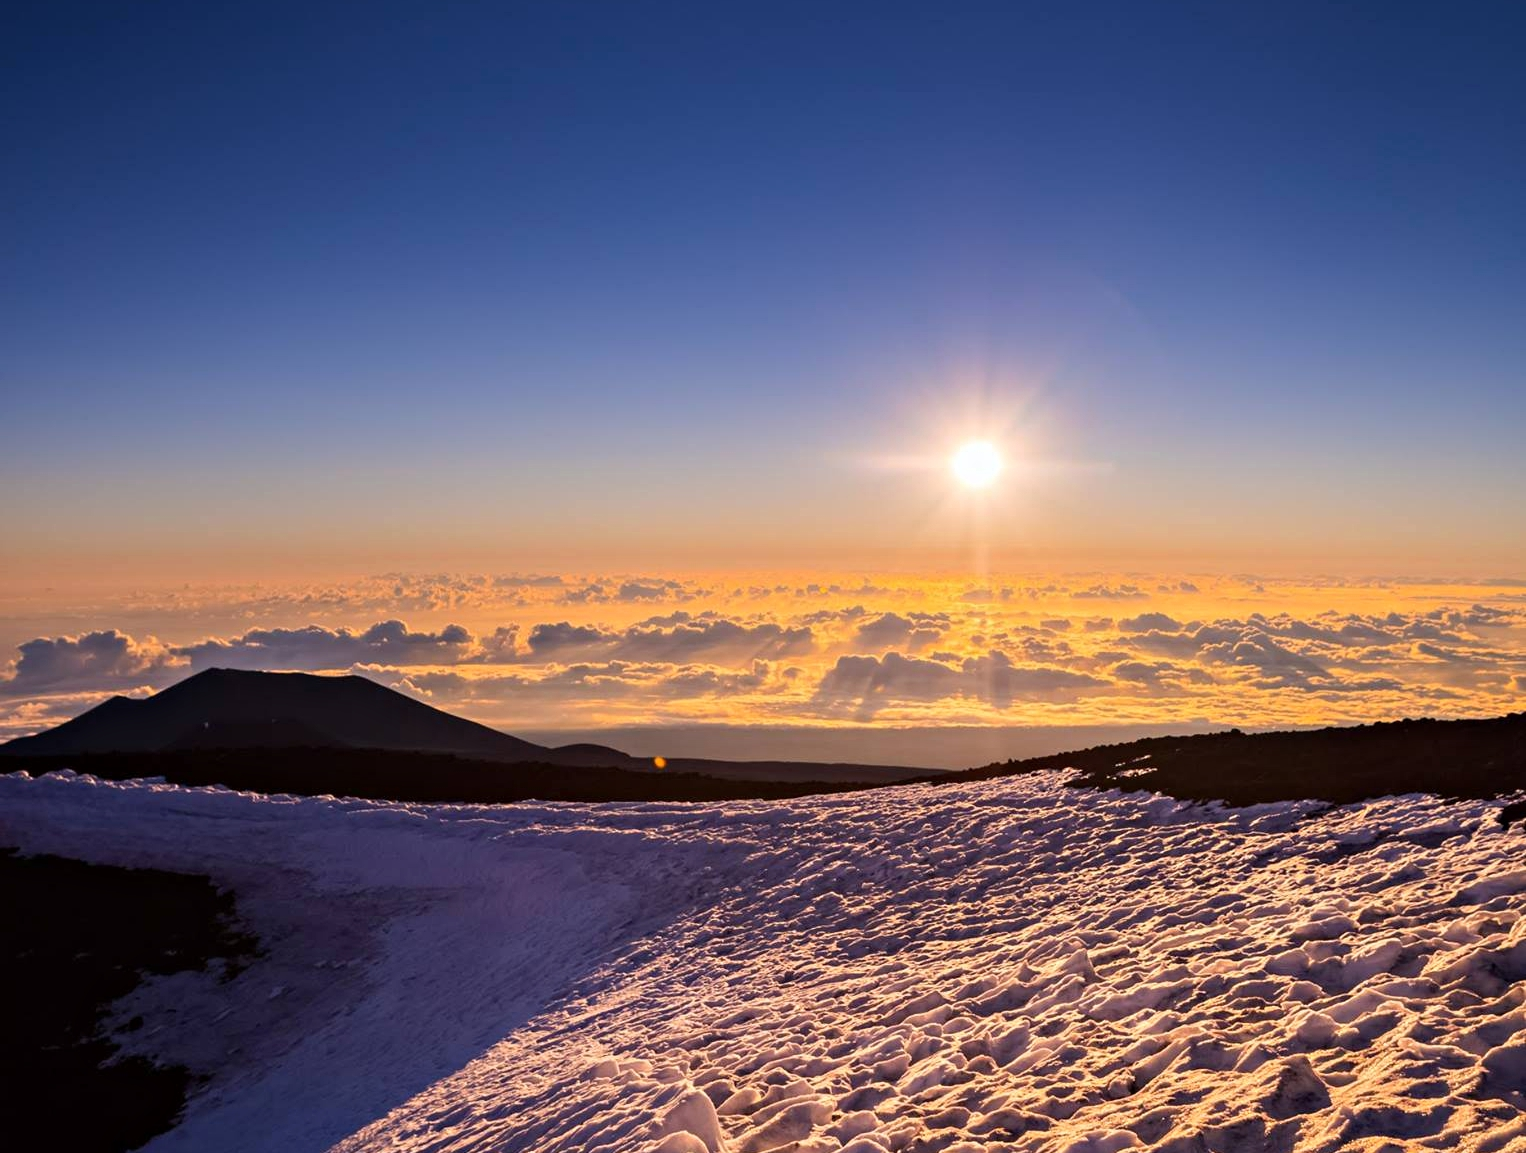 Coronavirus Anxiety Prompts Temporary Closure of Maunakea Visitor Center